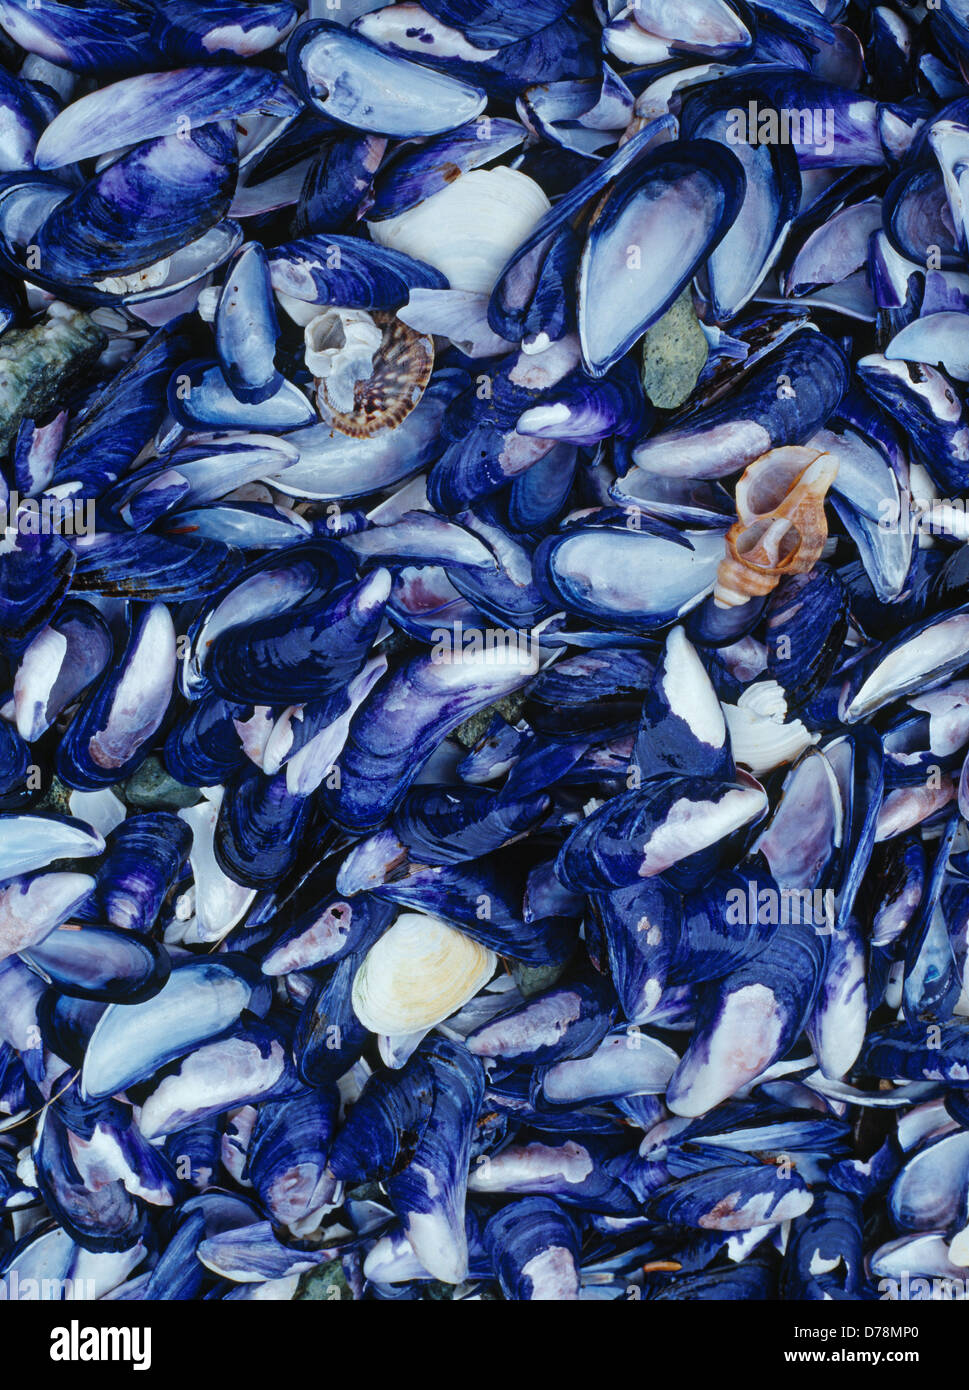 mussels assorted seashells washed on south island stephens